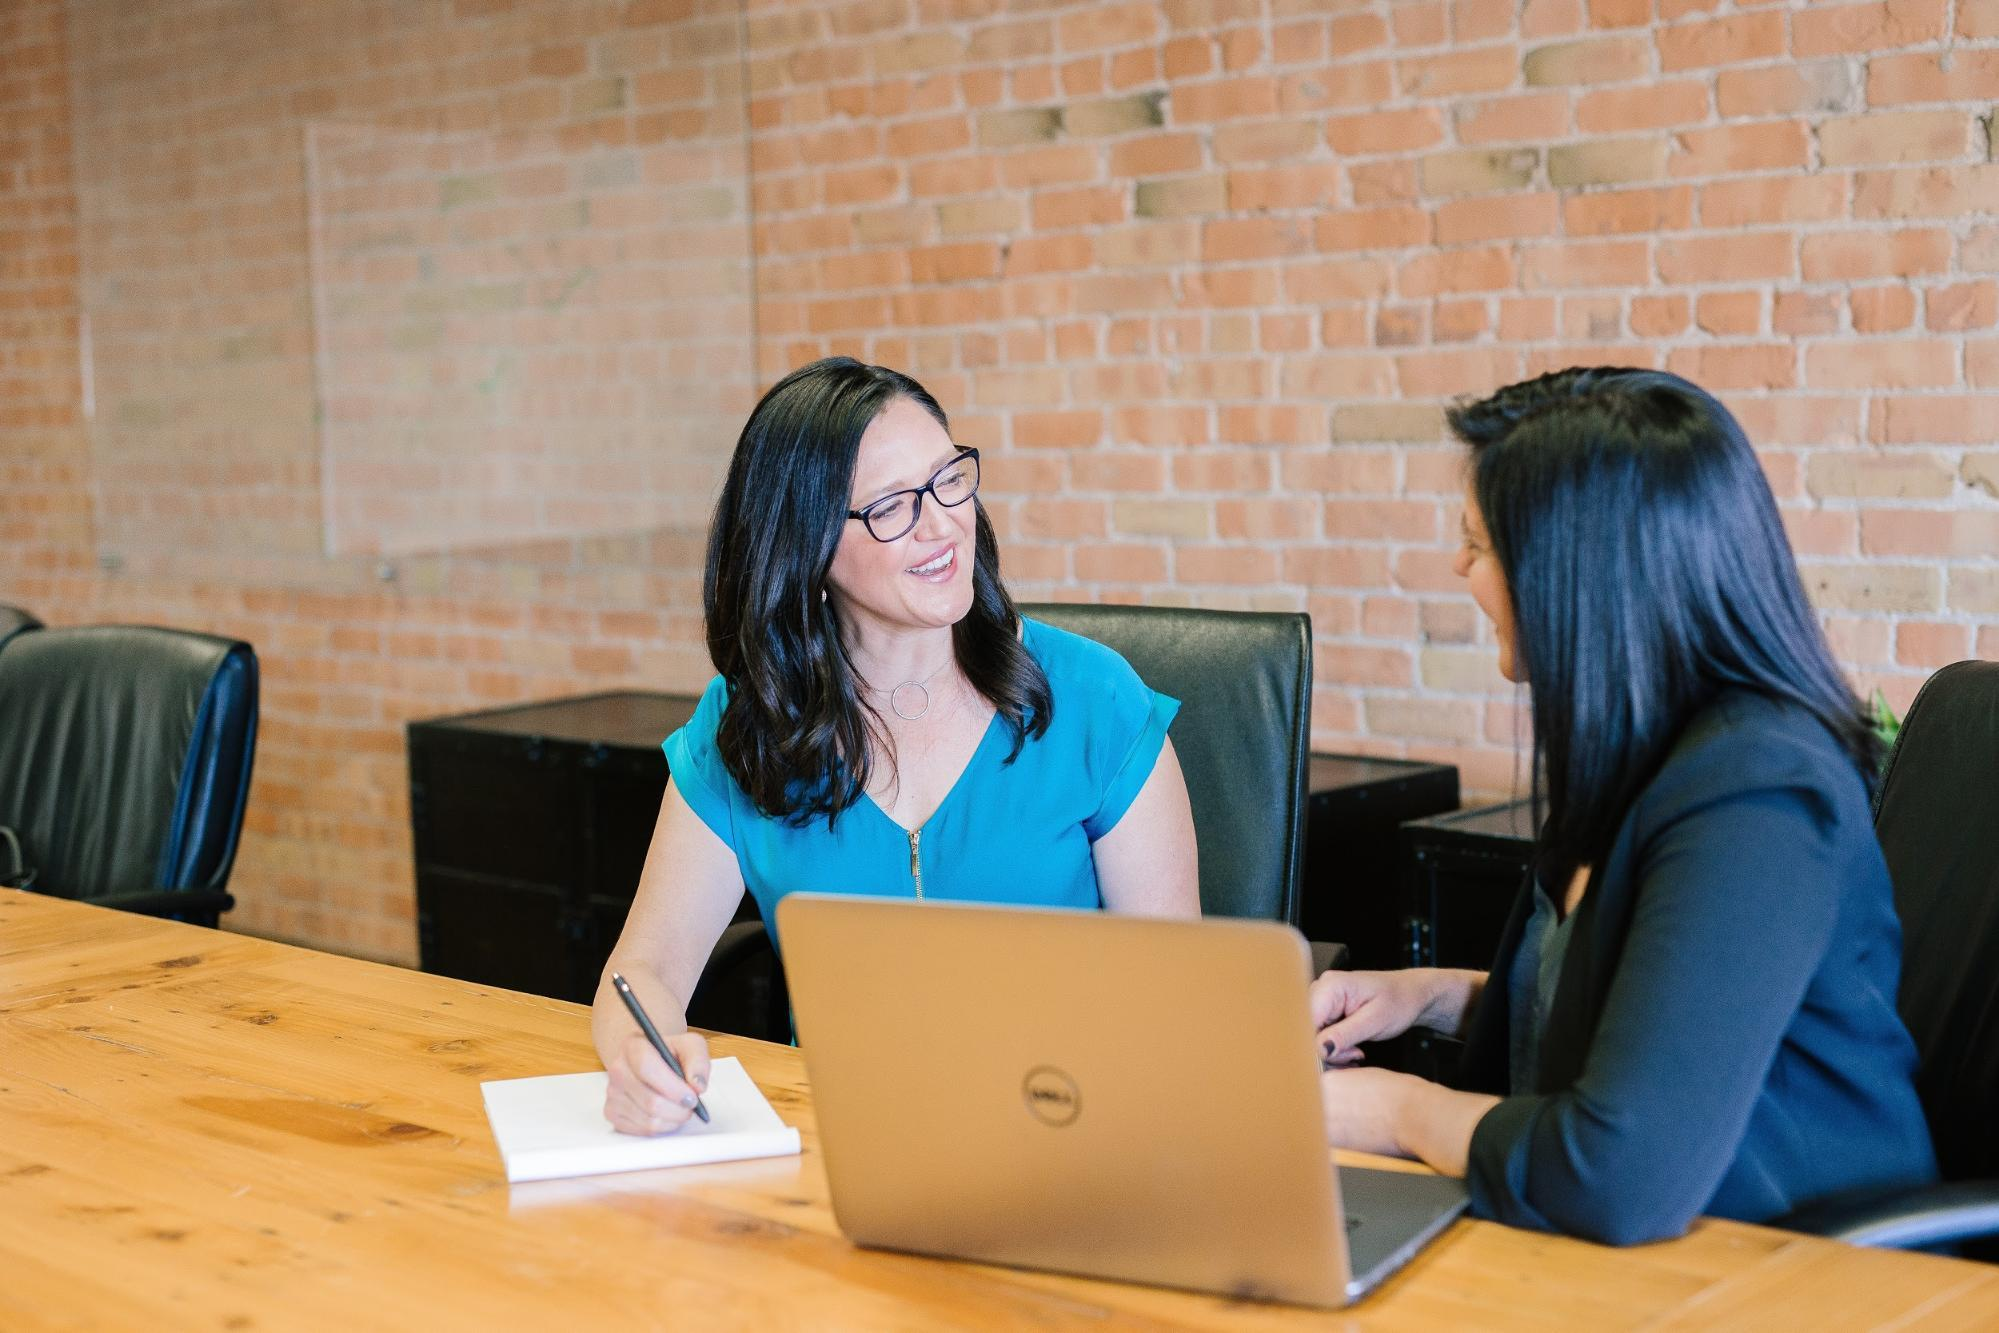 A job interview representing an answer to the question - Are coding bootcamps worth it?